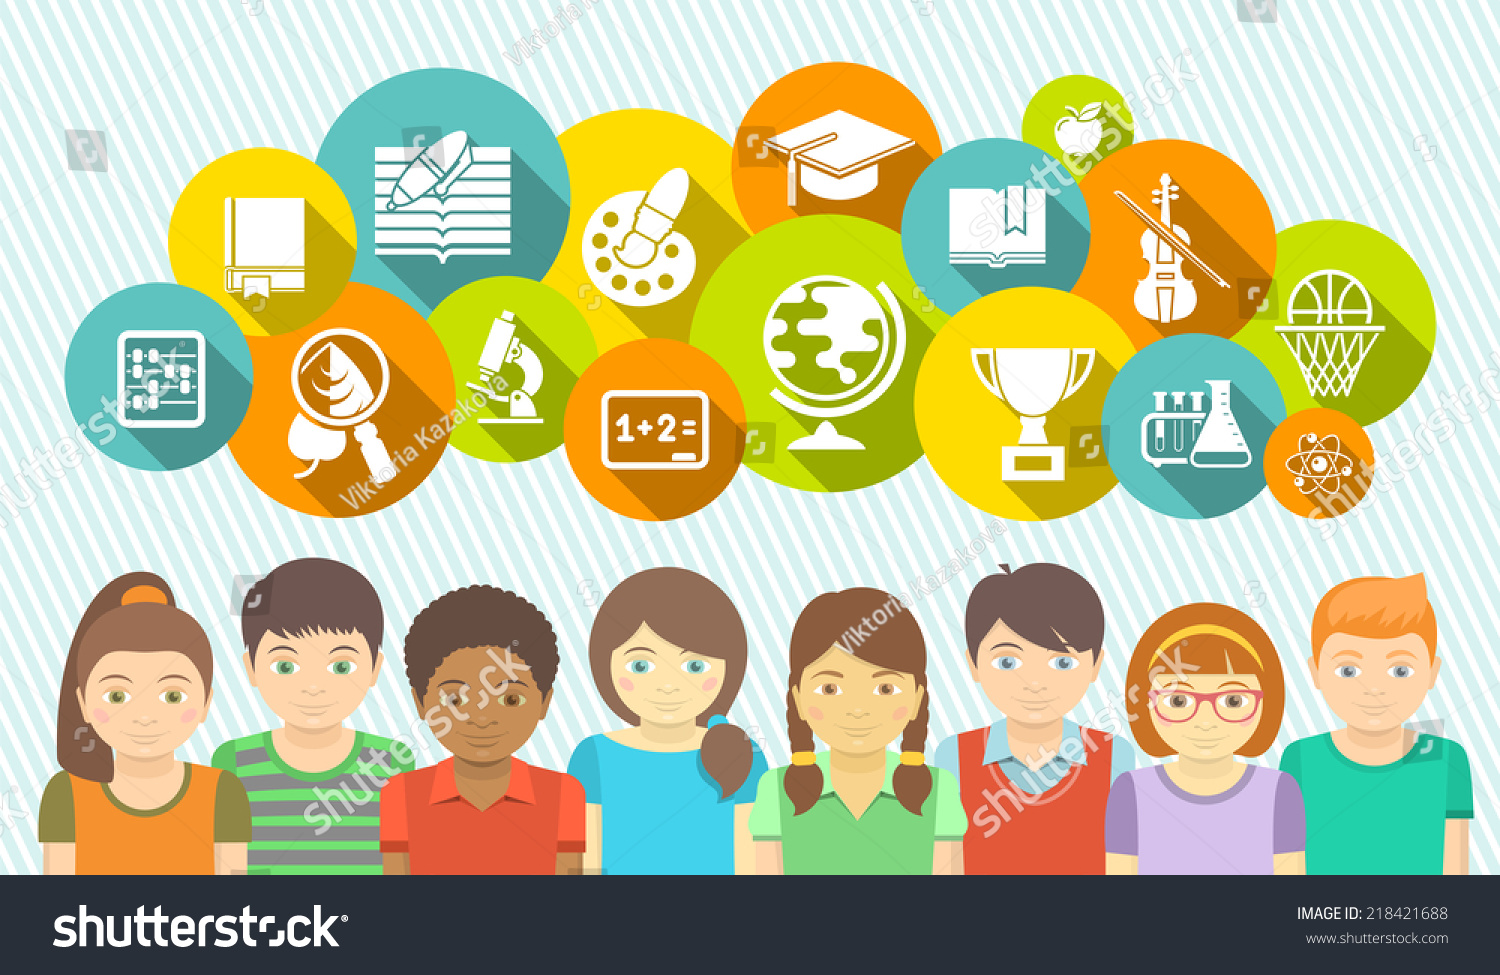 Educational Leadership and Administration subjects in highschool